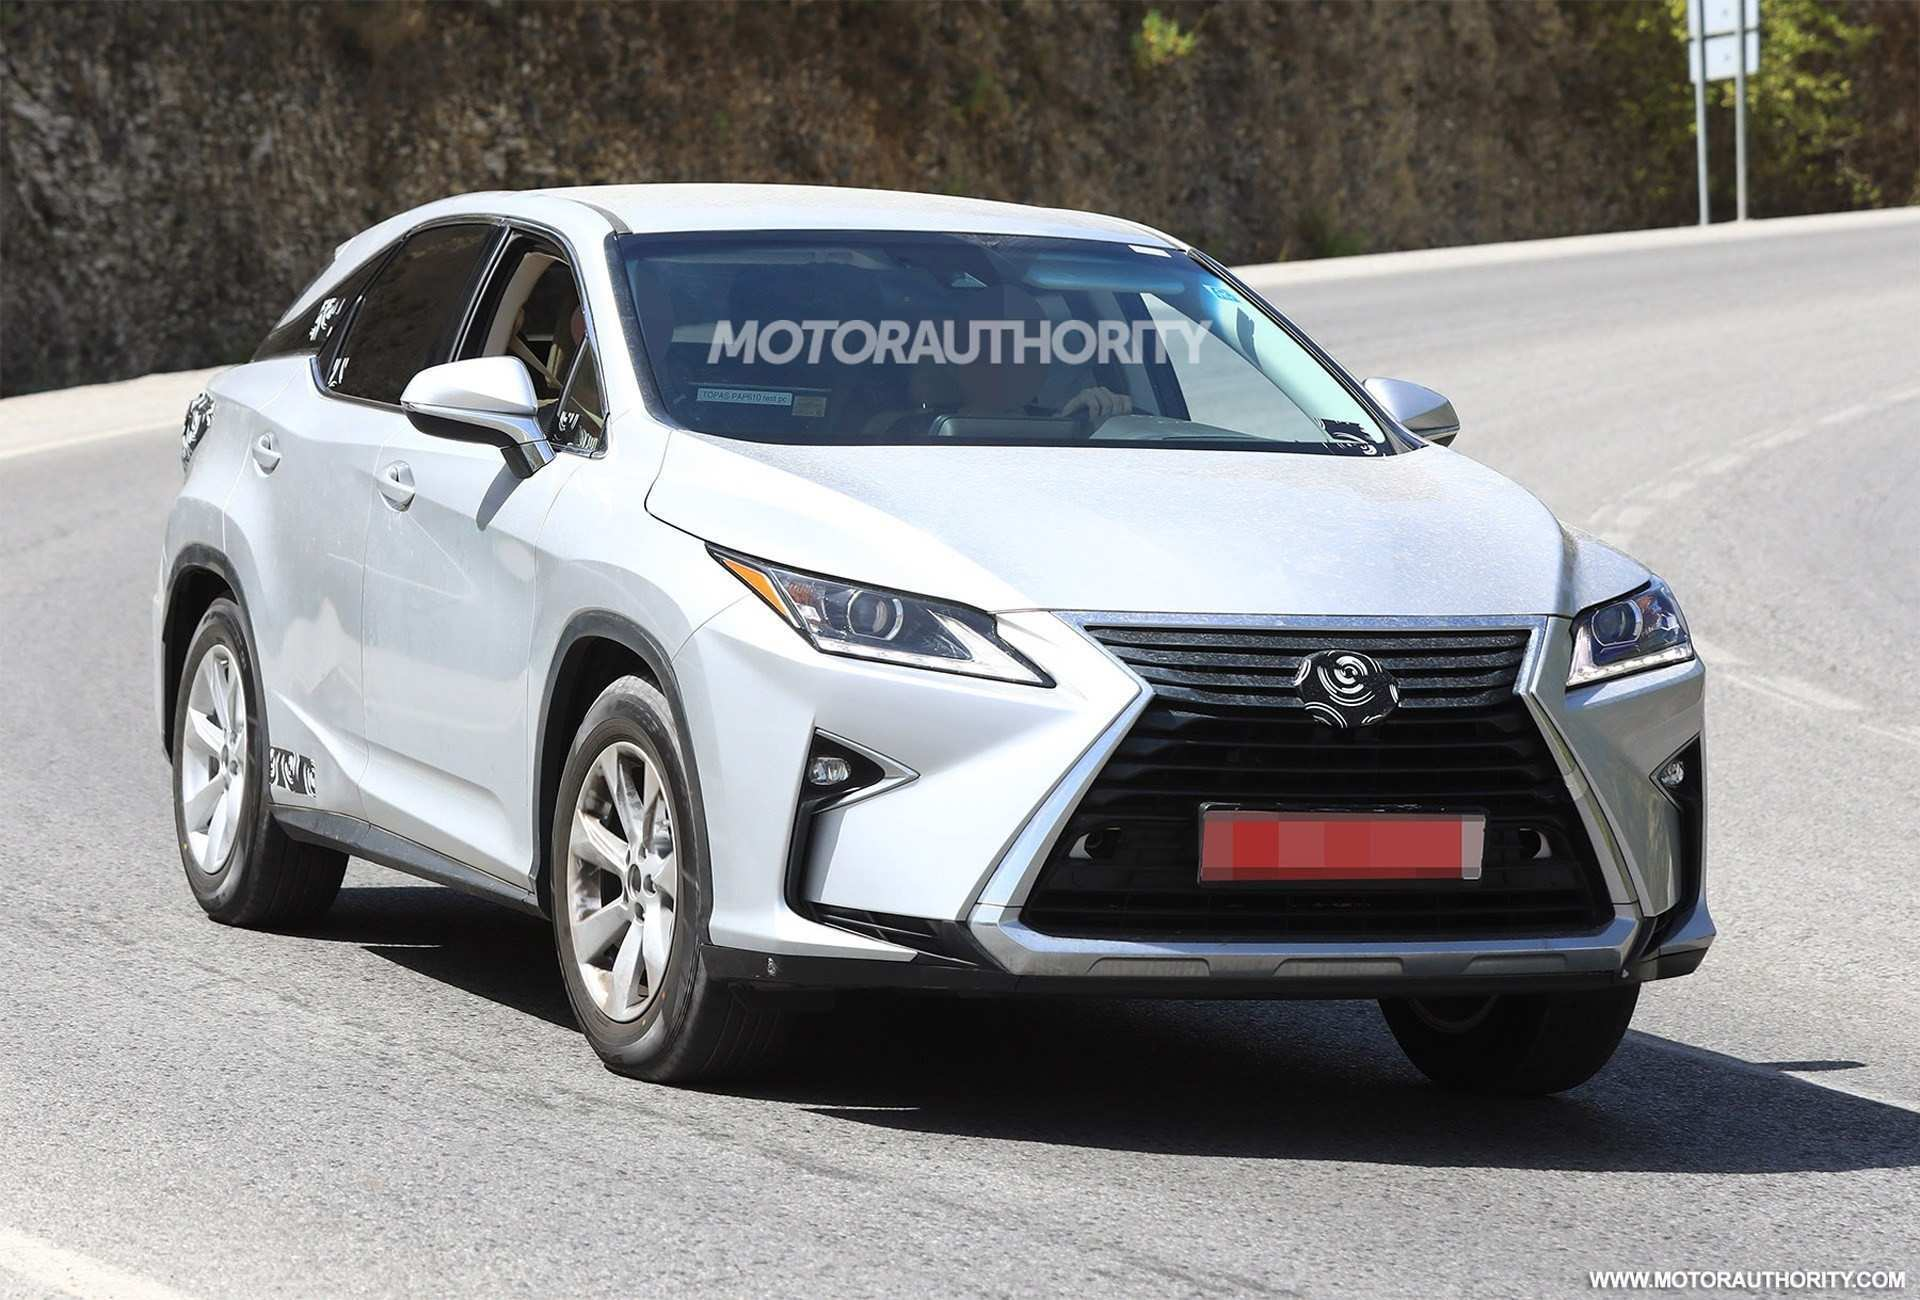 34 Best Review New Lexus Rx 350 Redesign 2019 Release Specs And Review New Review with New Lexus Rx 350 Redesign 2019 Release Specs And Review